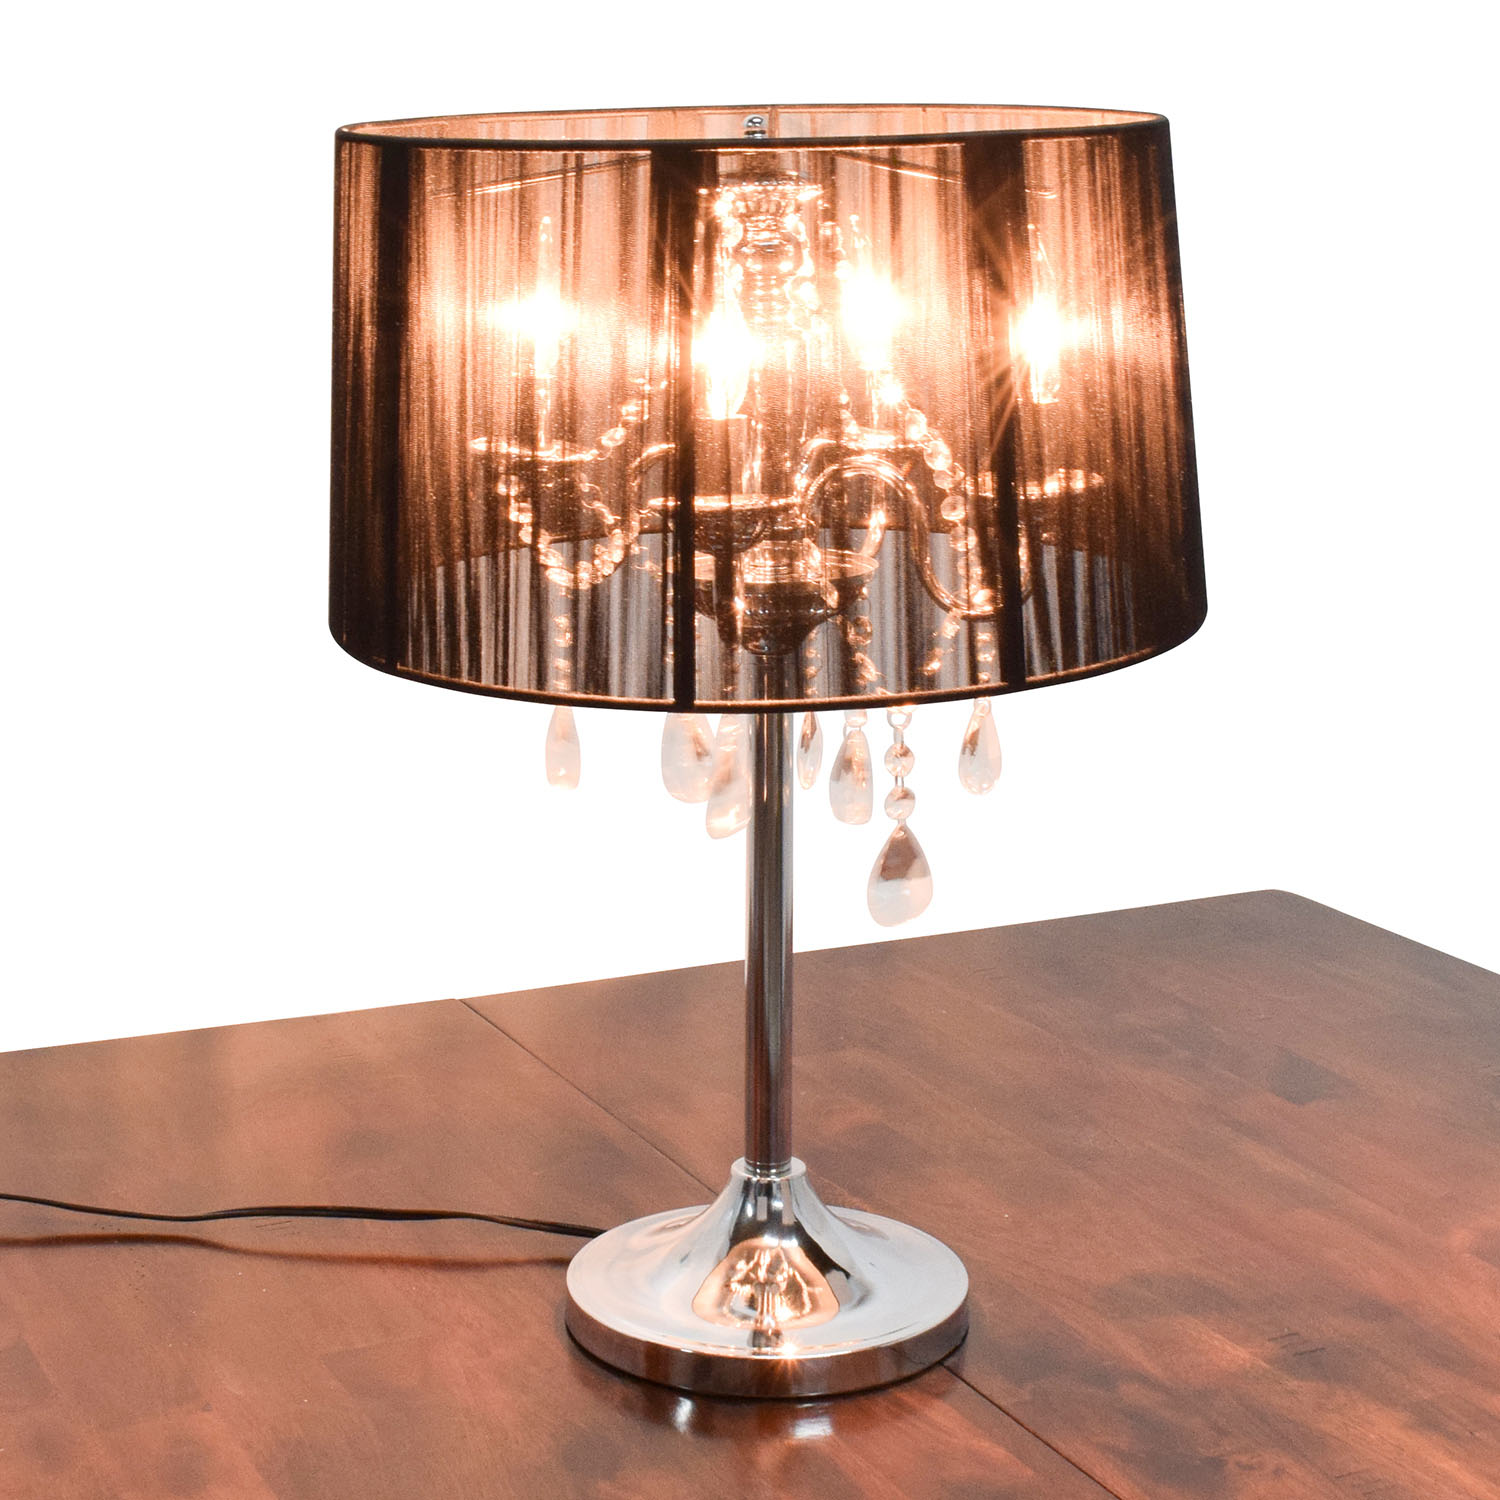 Destination Lightening Lamps with Crystals and Chrome Base sale